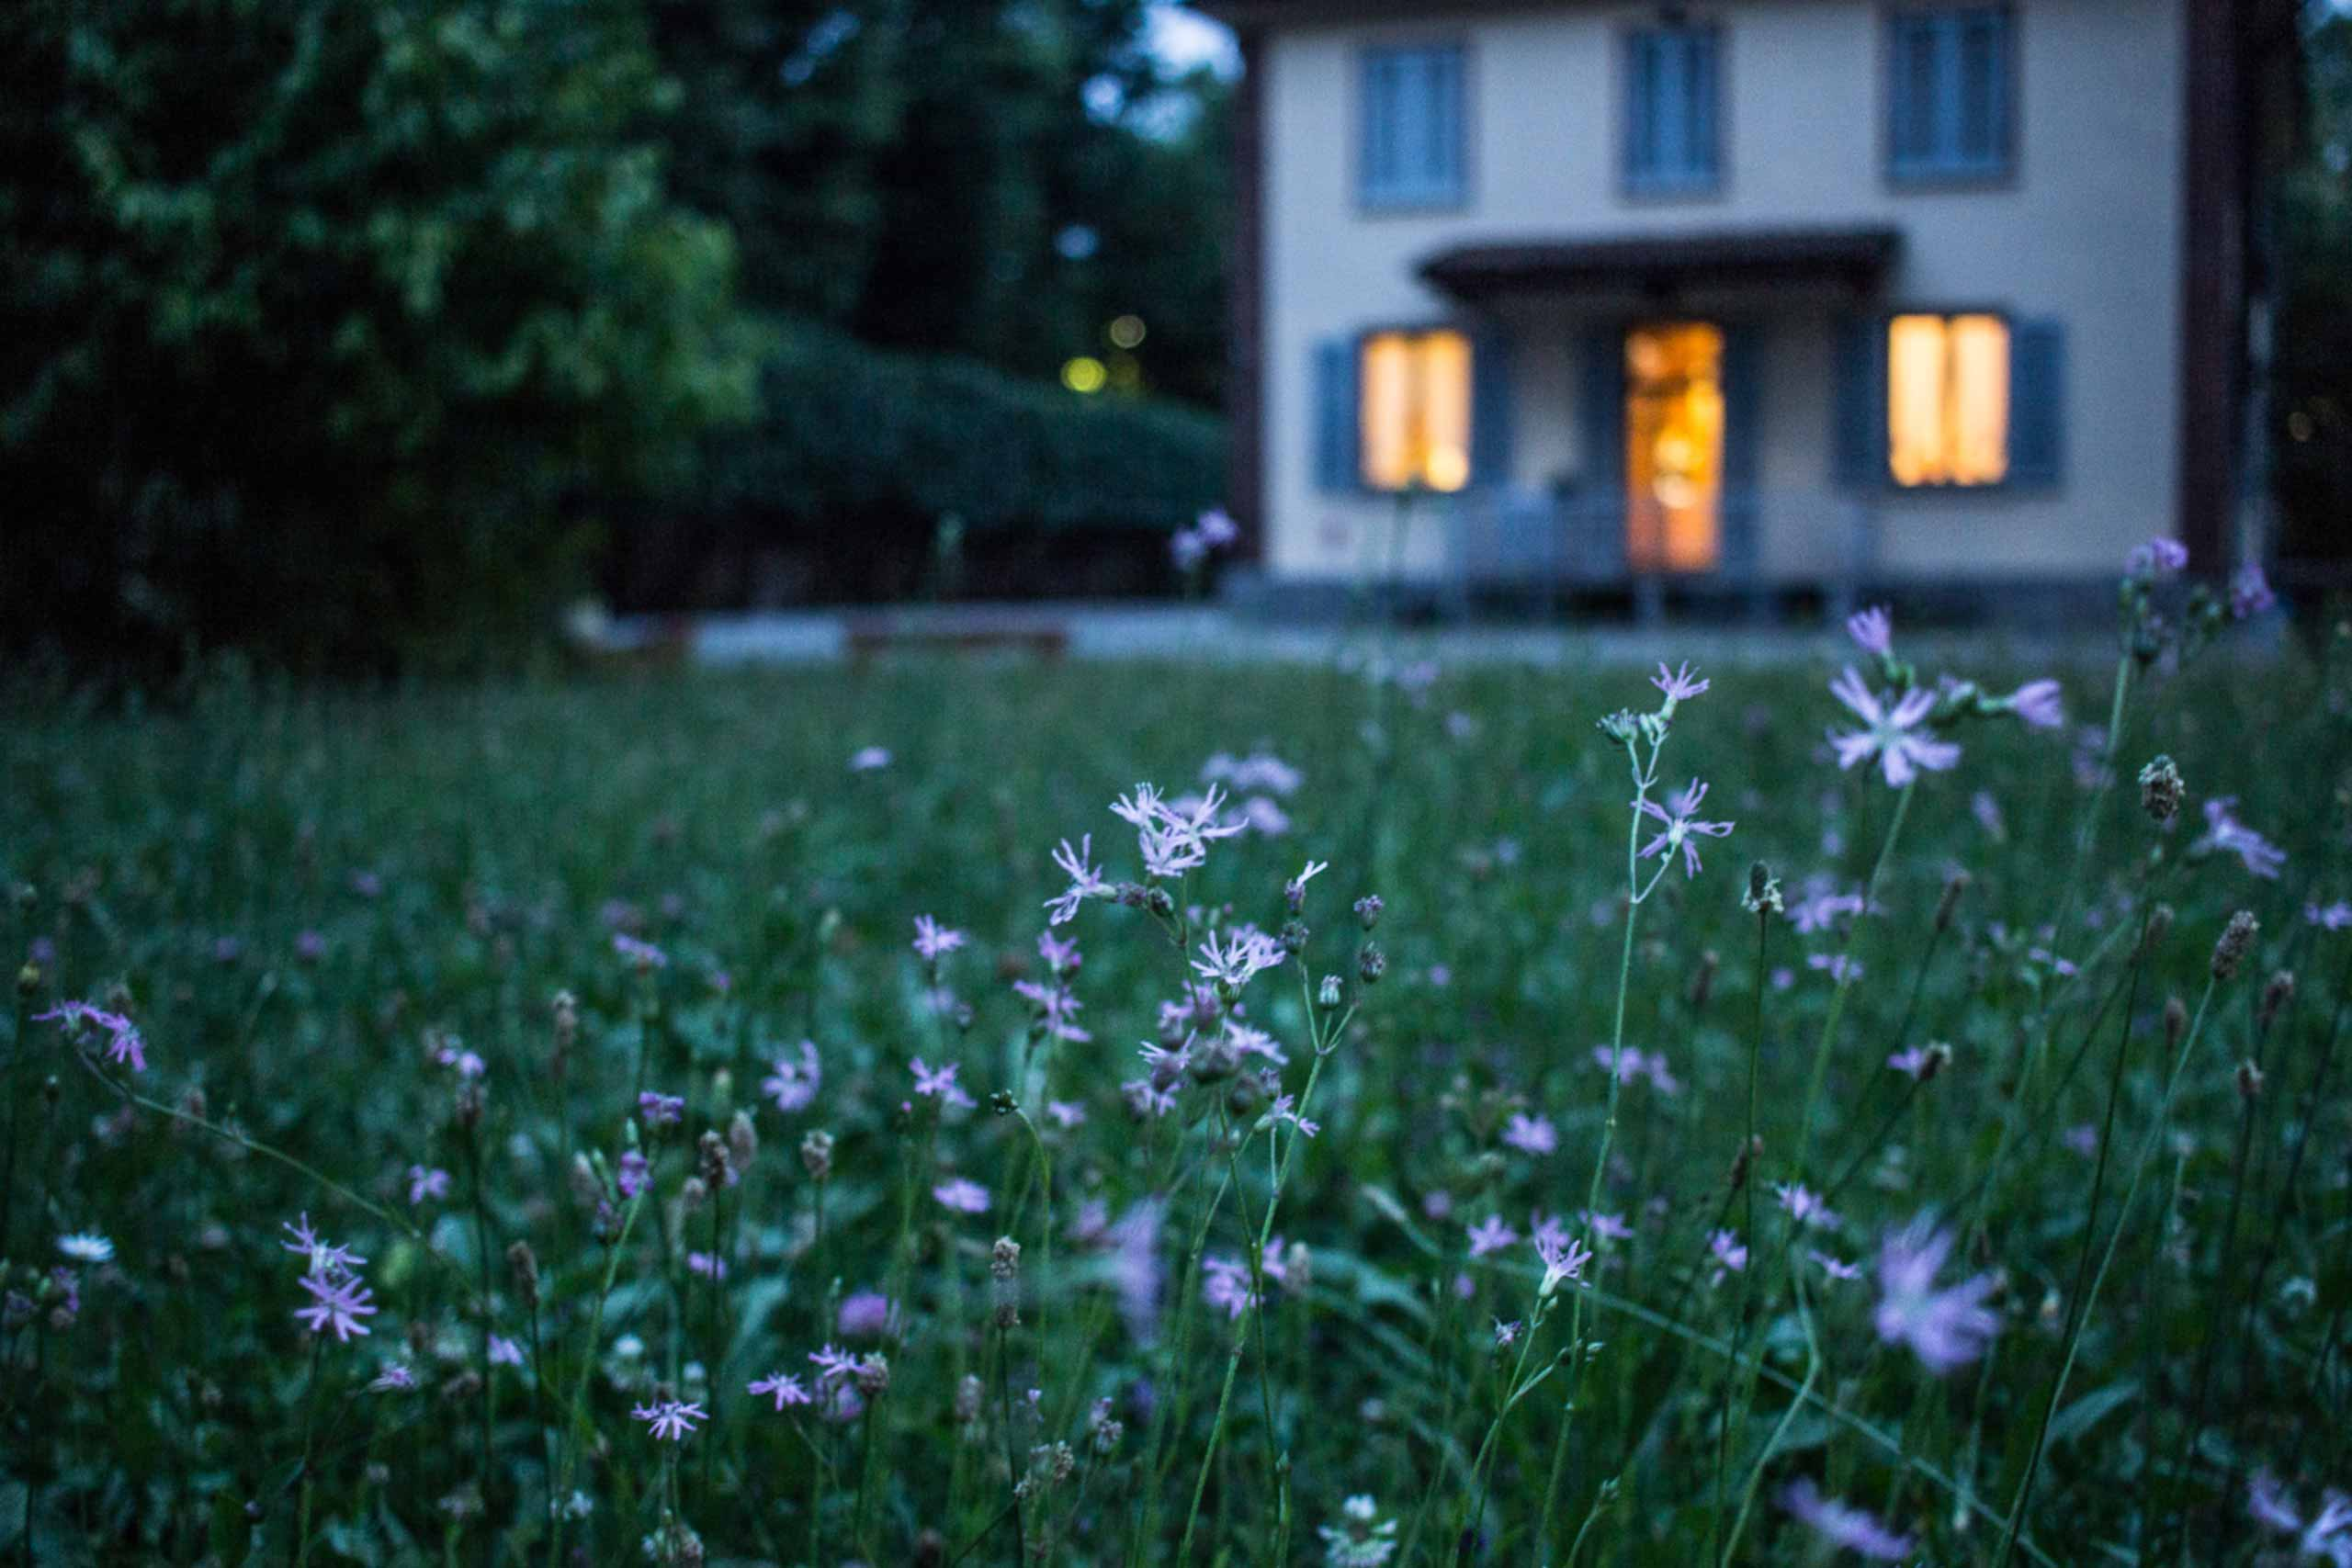 In the background and out of focus, a home with the lights on, with a foreground of grass and flowers, softly lit in the dusk light.